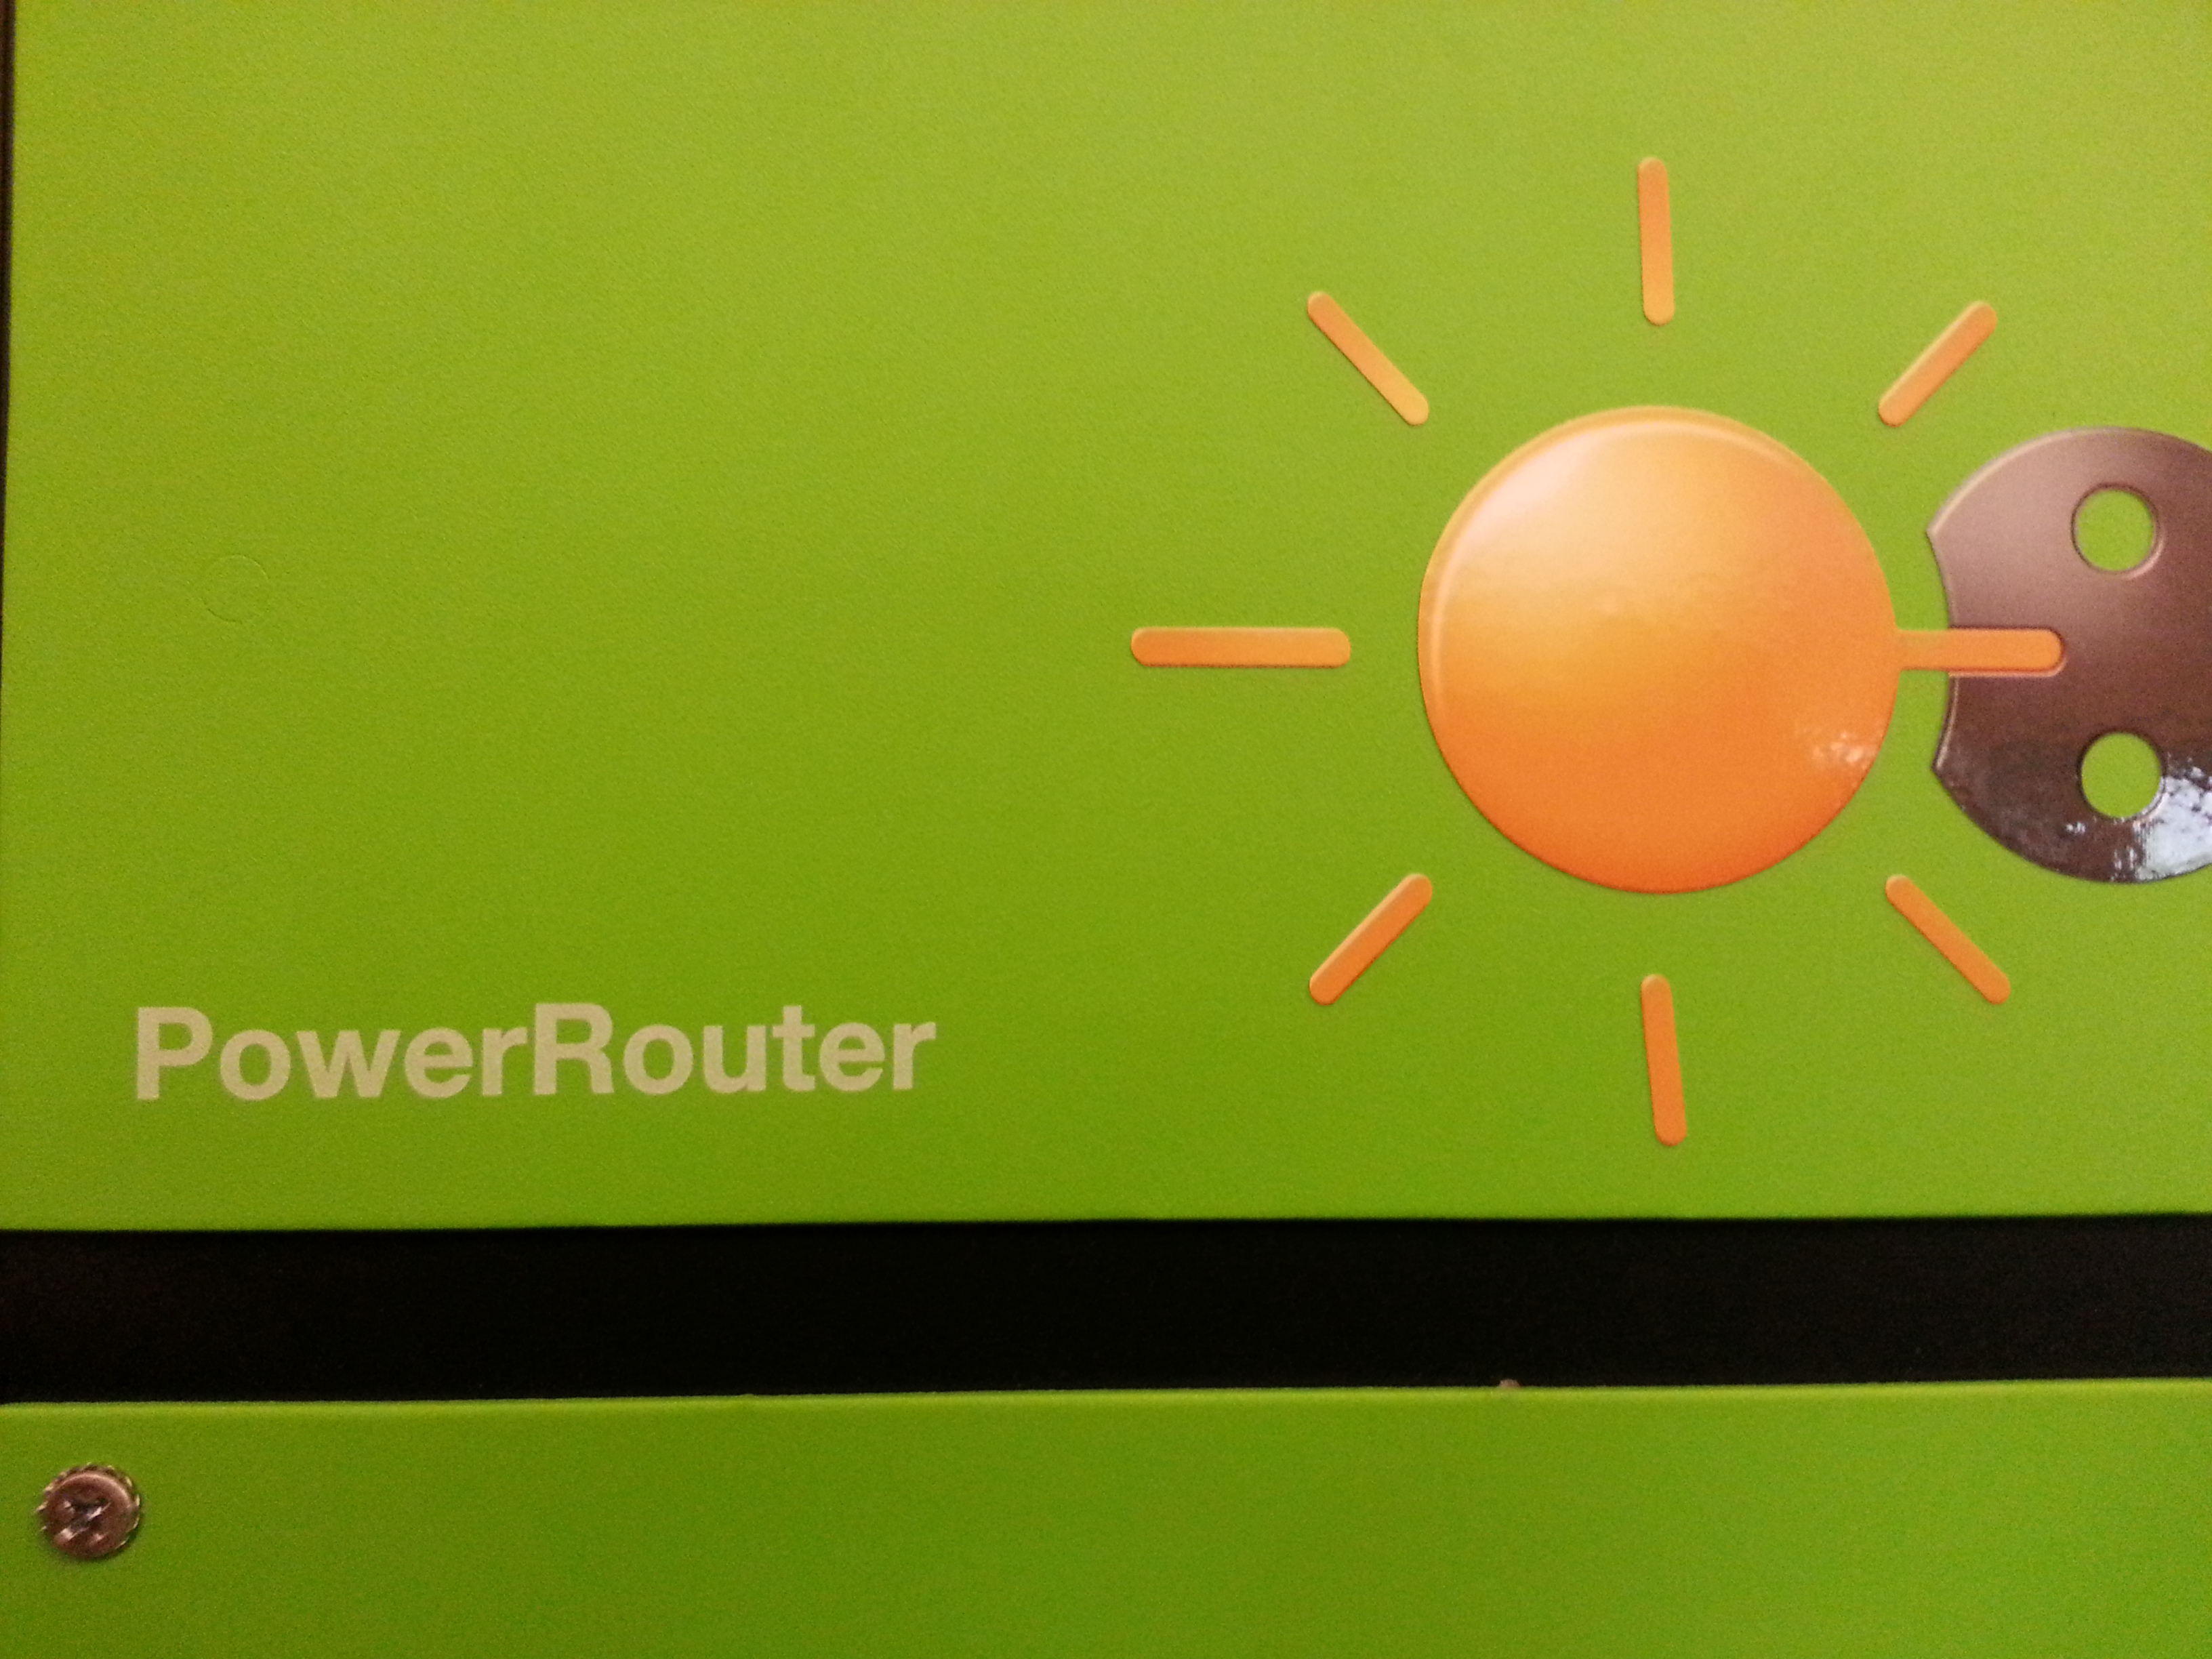 not only in networking...routers!